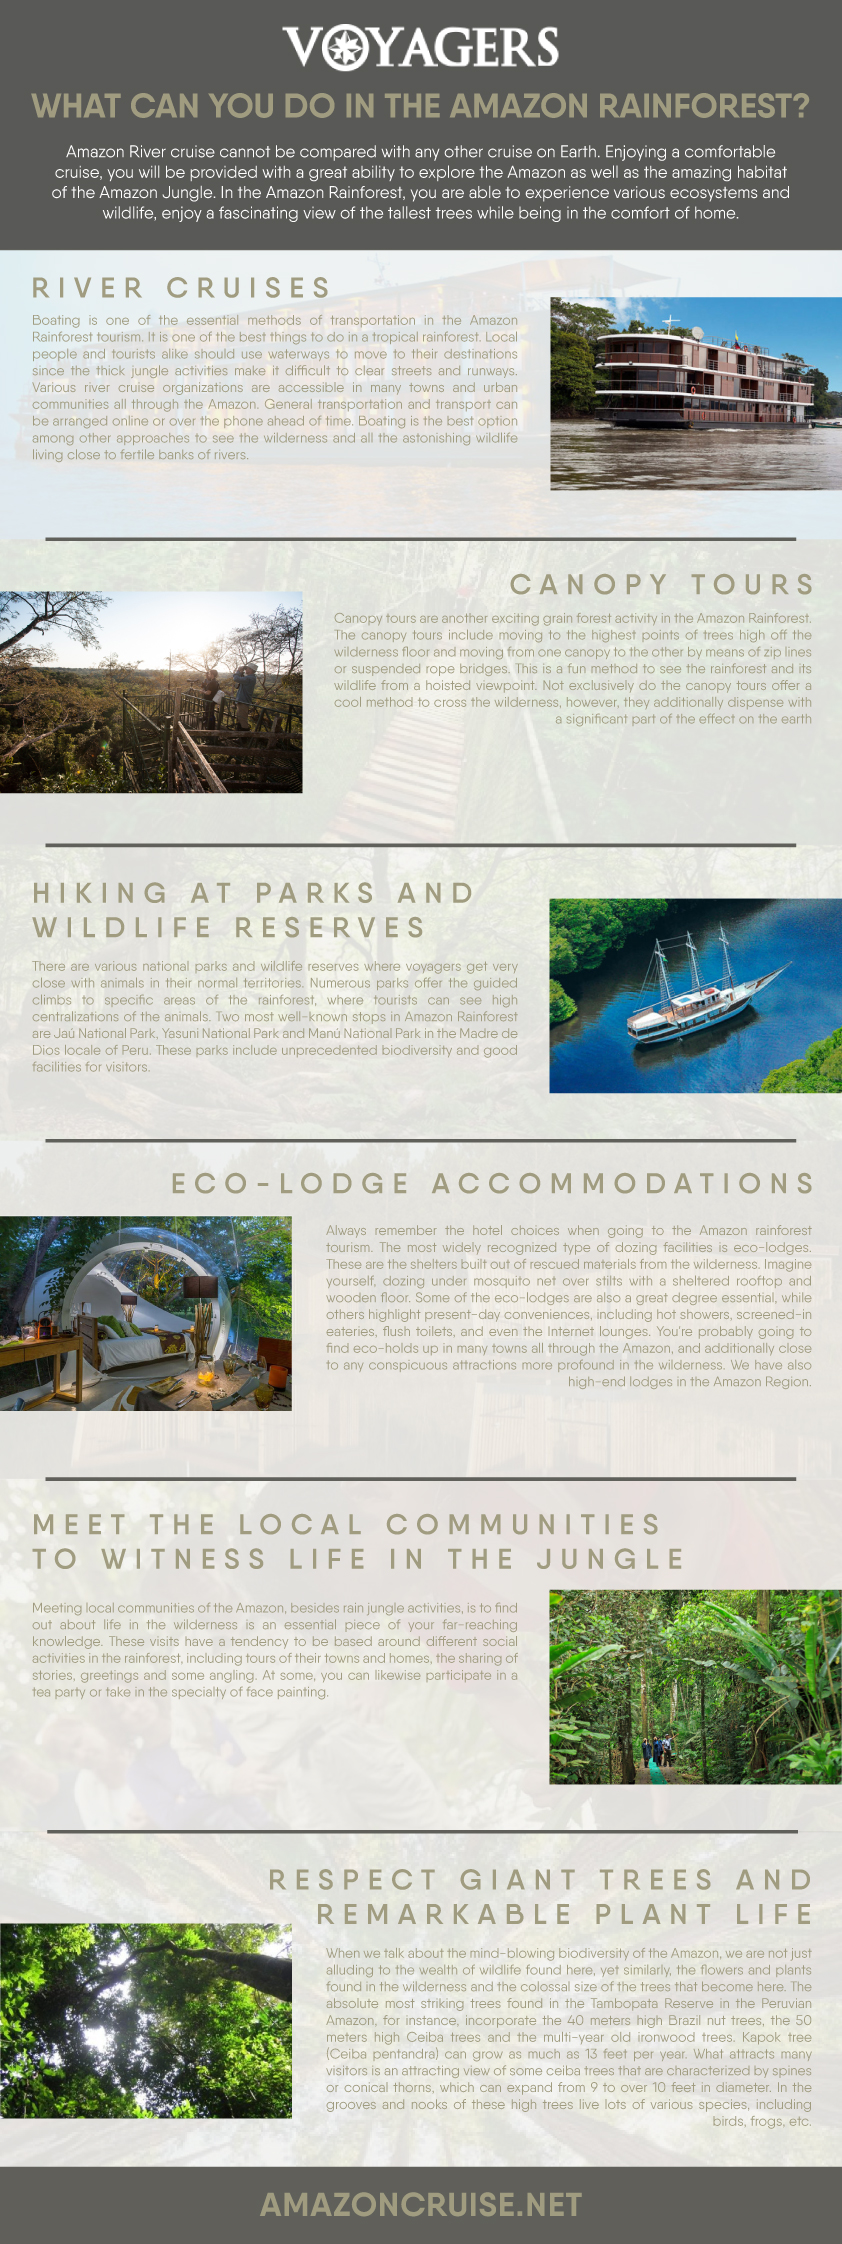 what can you do in the amazon rainforest